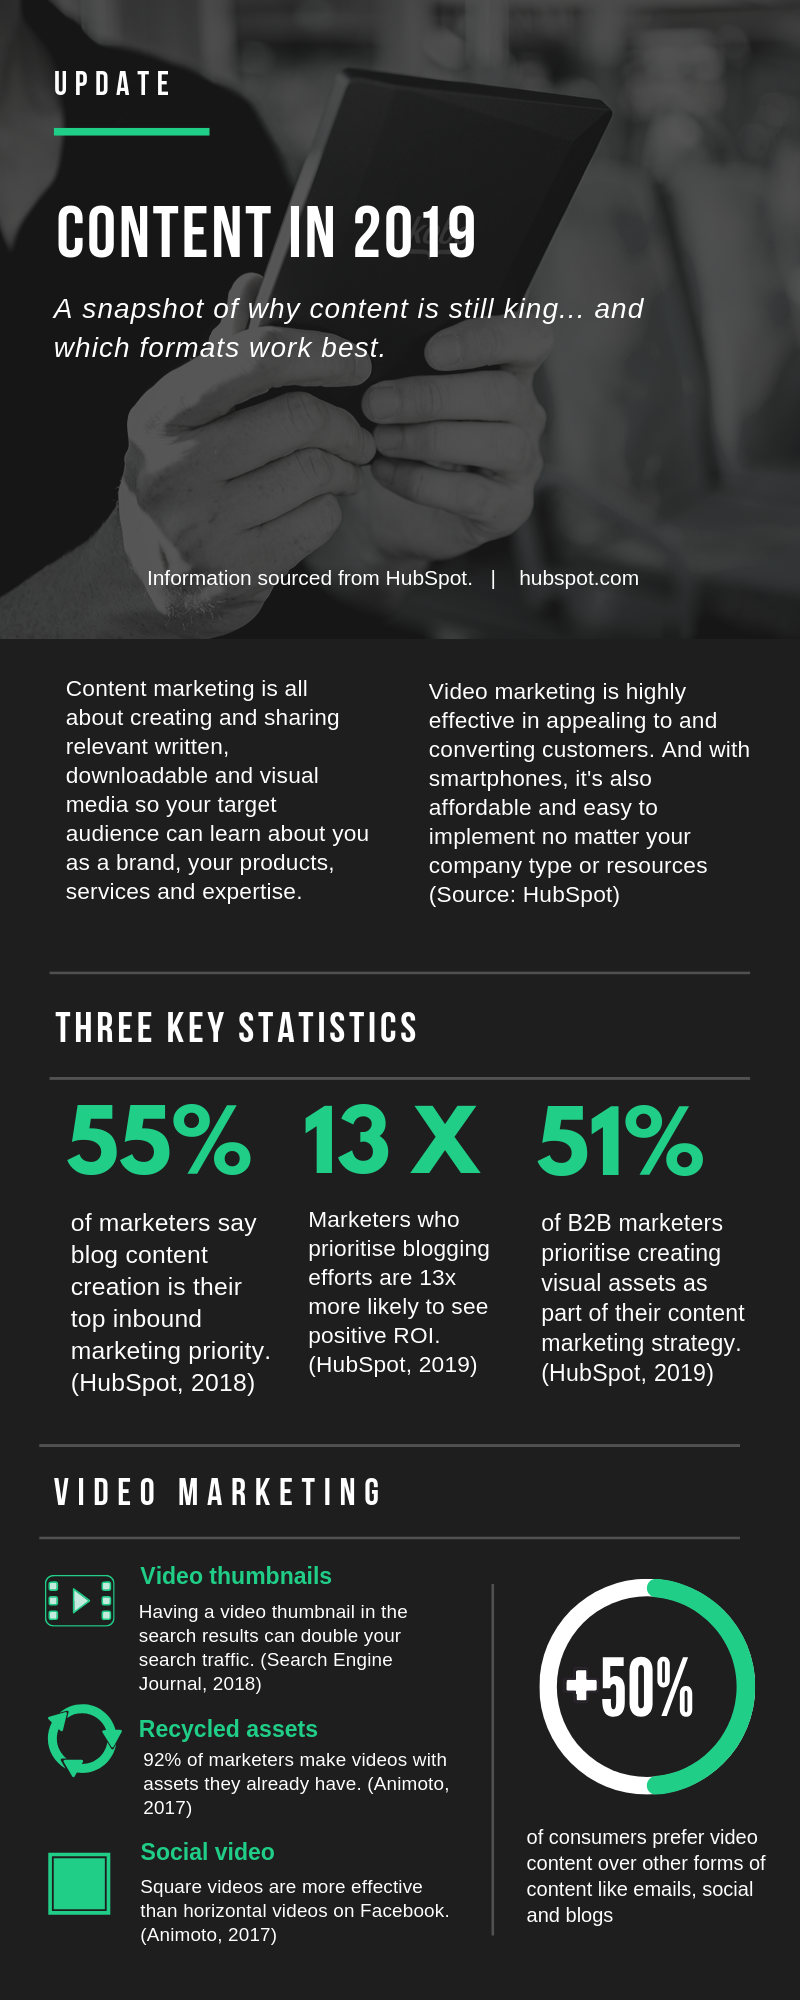 Infographic with content statistics